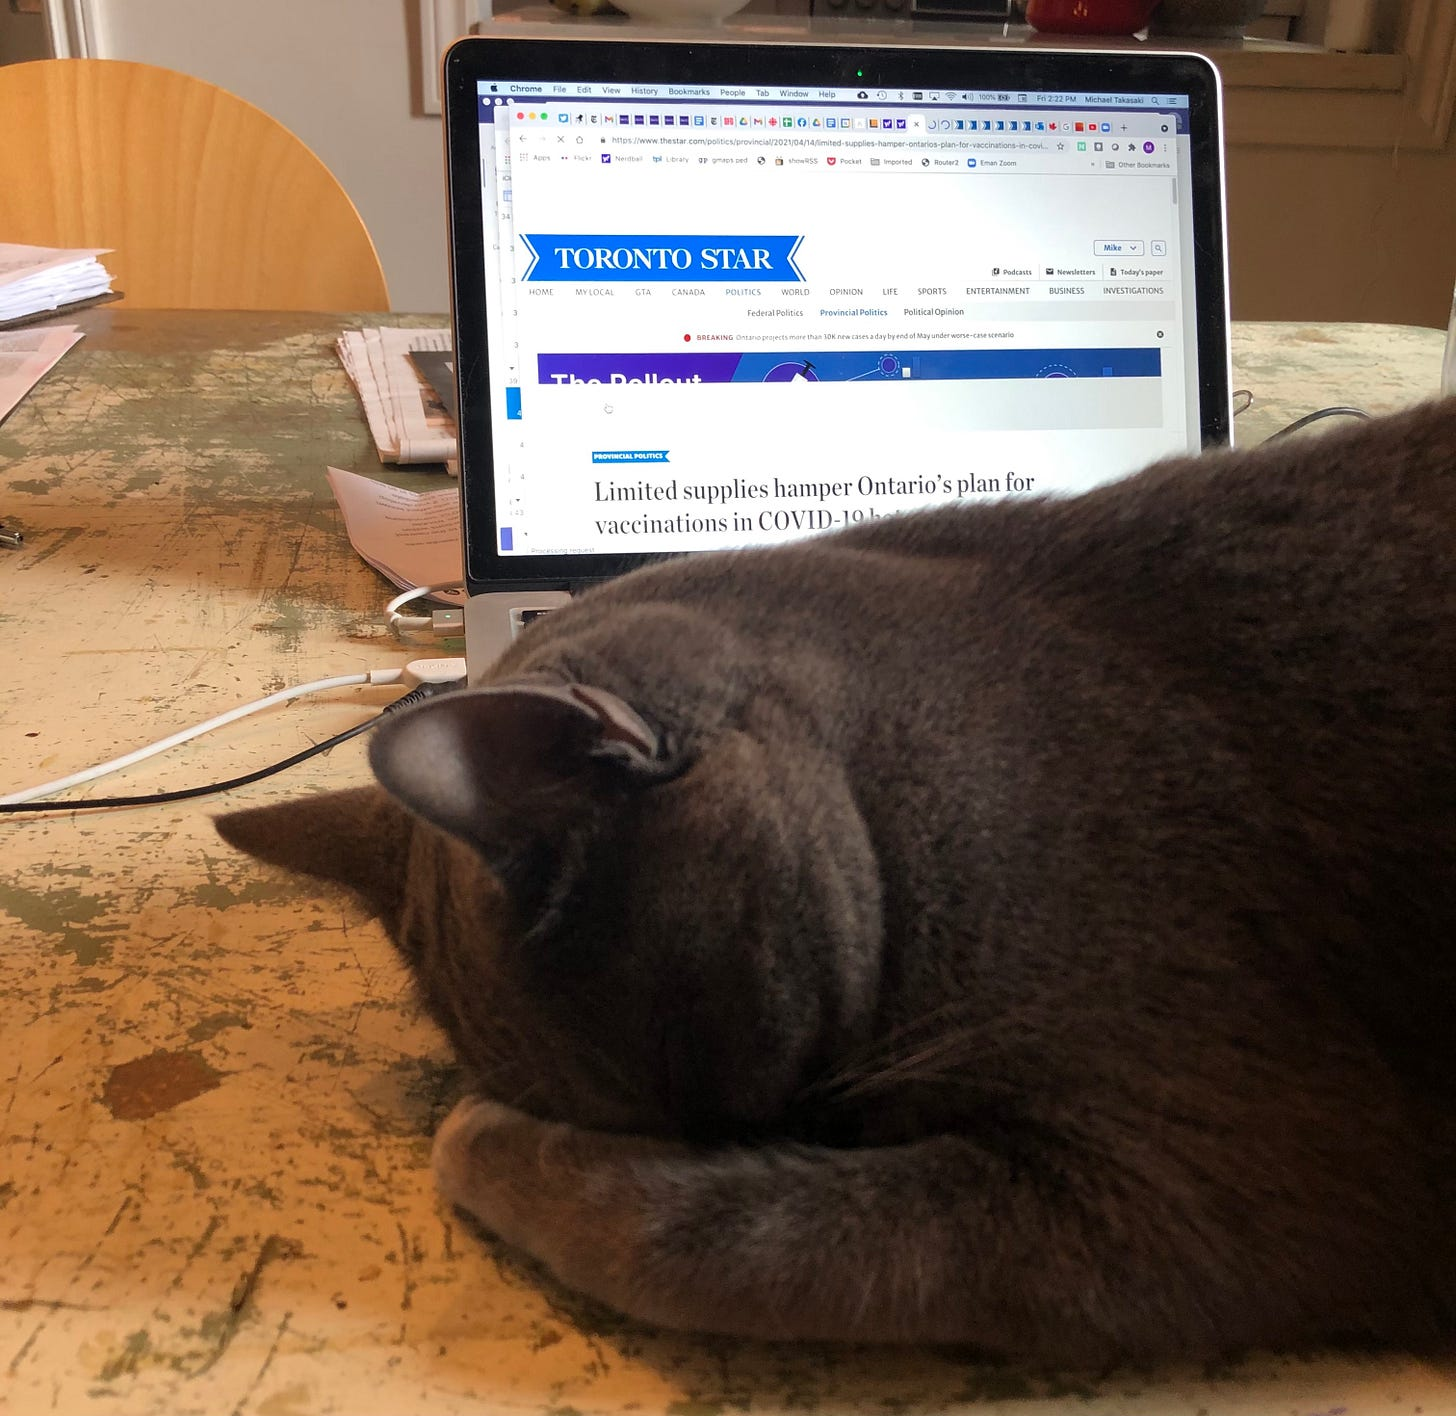 """A cat appears to be palming his face in disbelief. Behind him there's a laptop with a news article open. The headline reads, """"Limited supplies hamper Ontario's plan for vaccinations."""